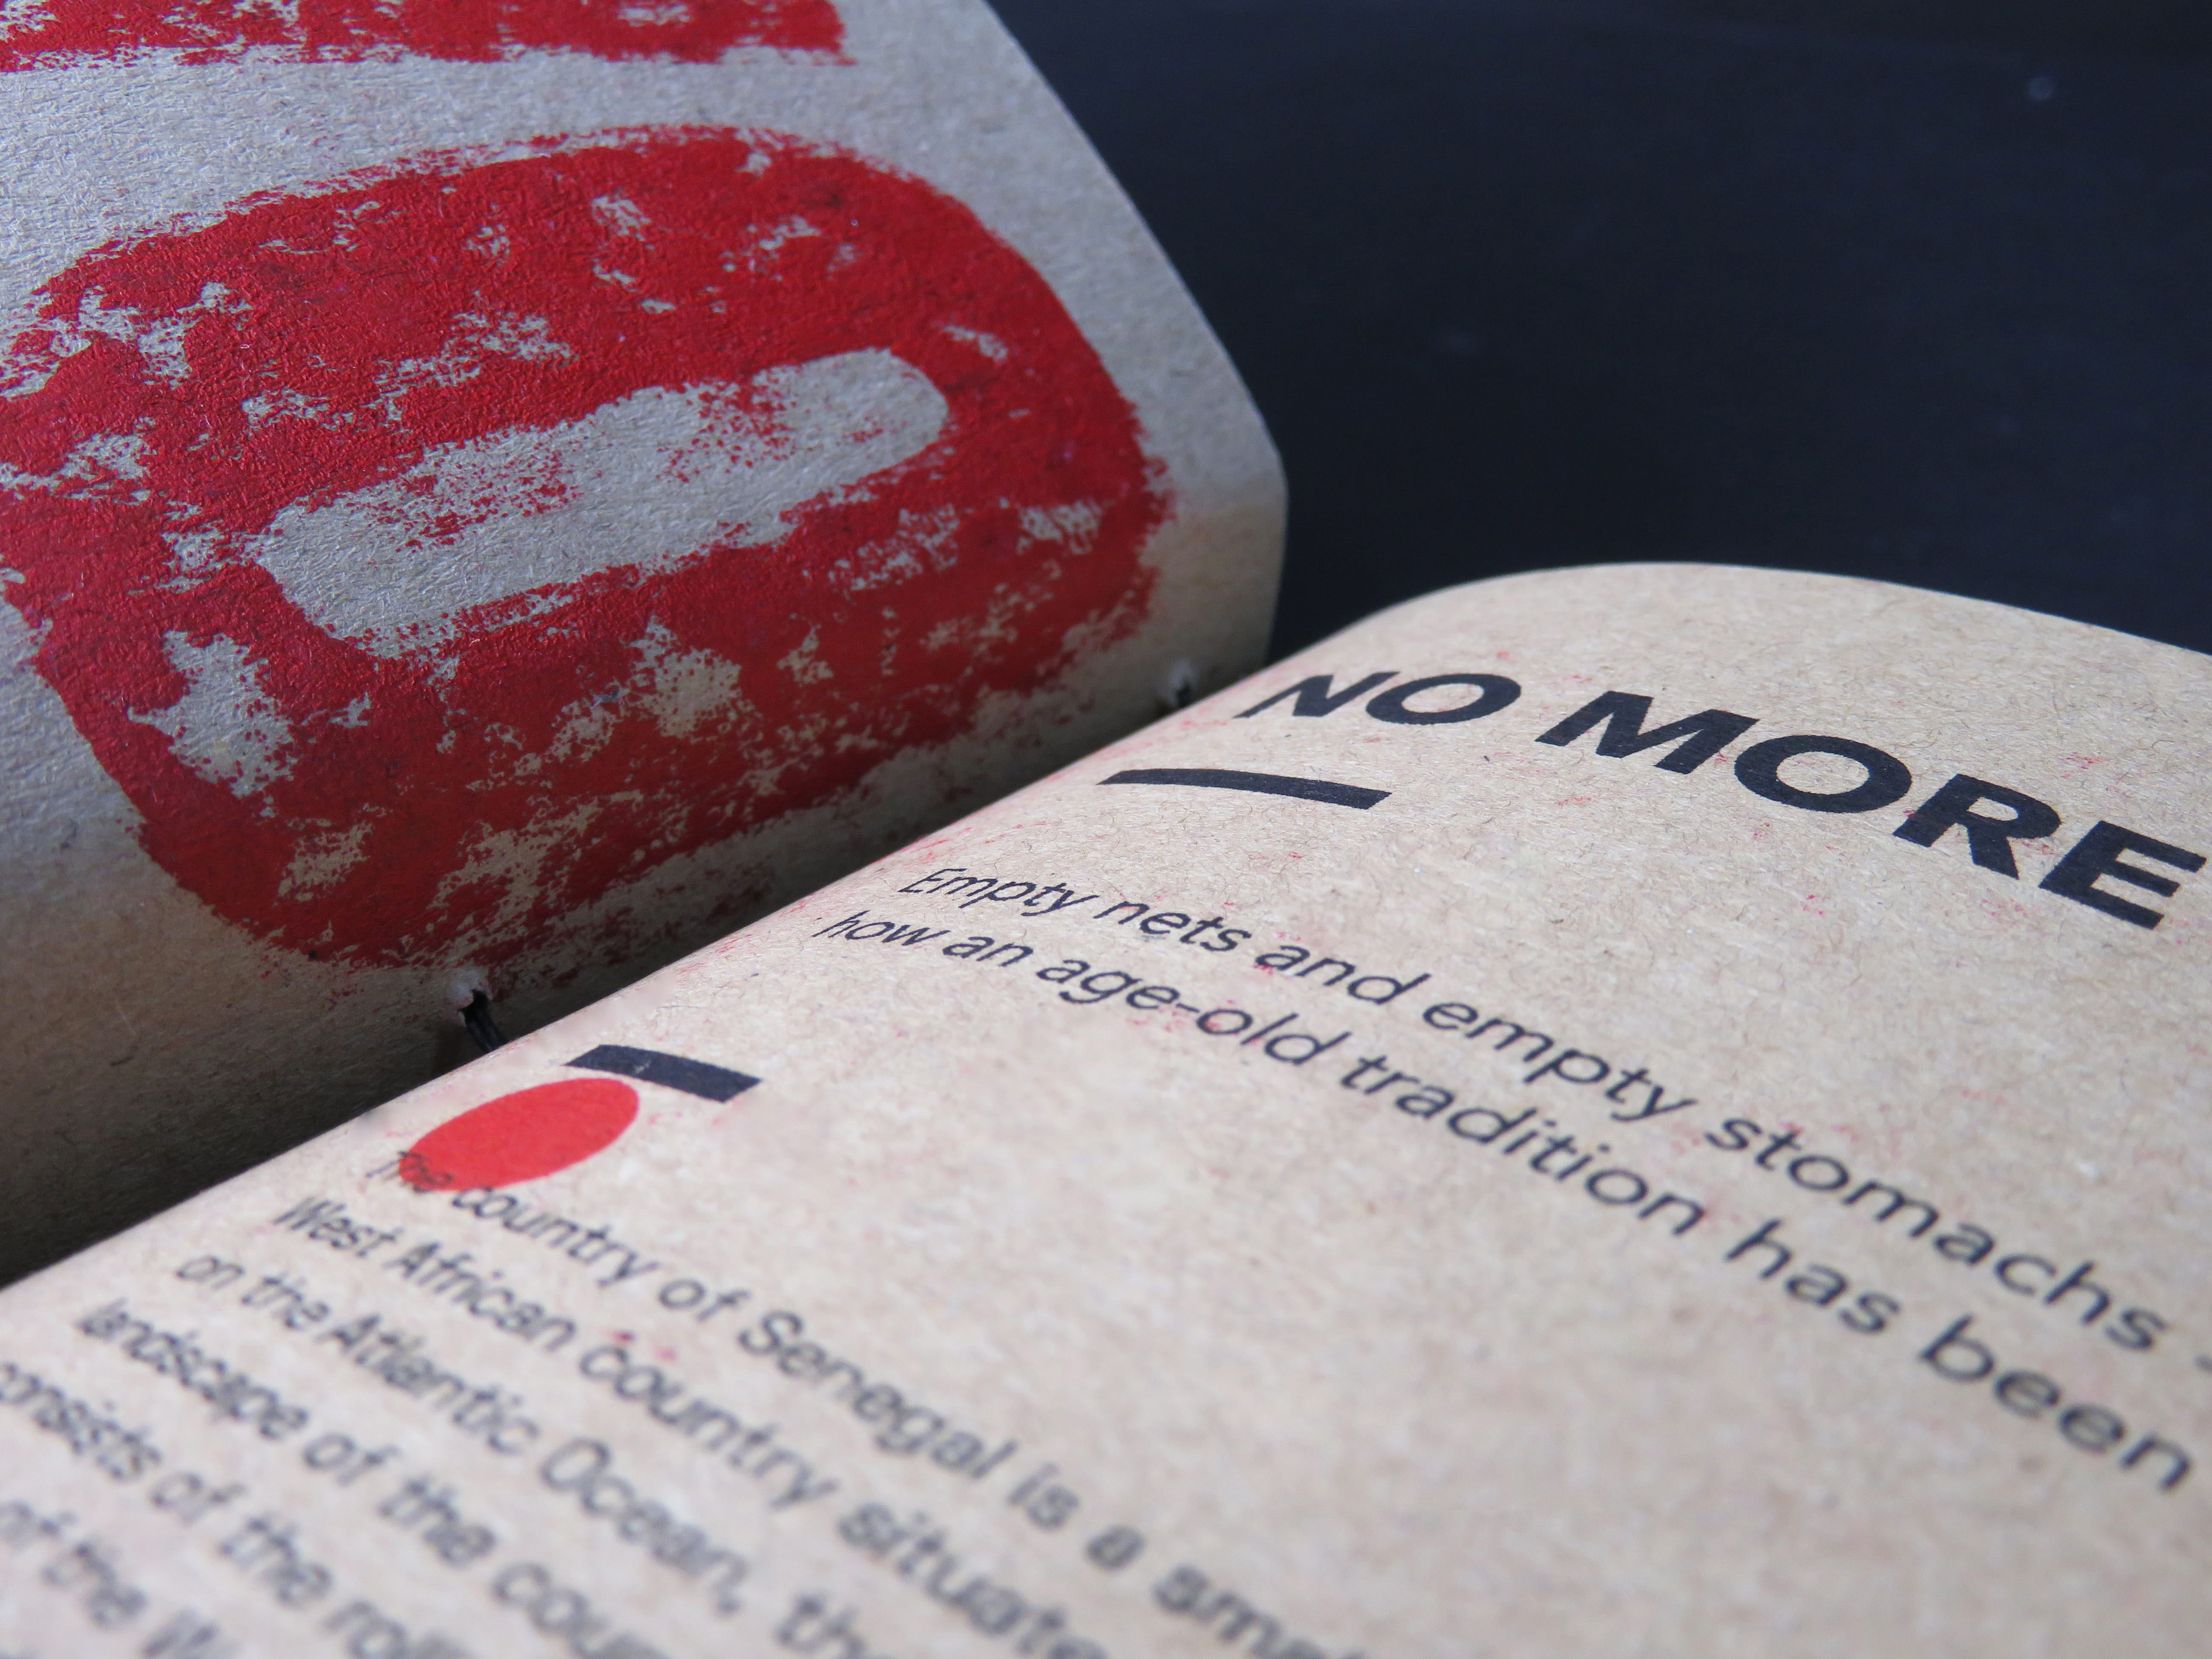 Close up of a book page showing the texture and type face